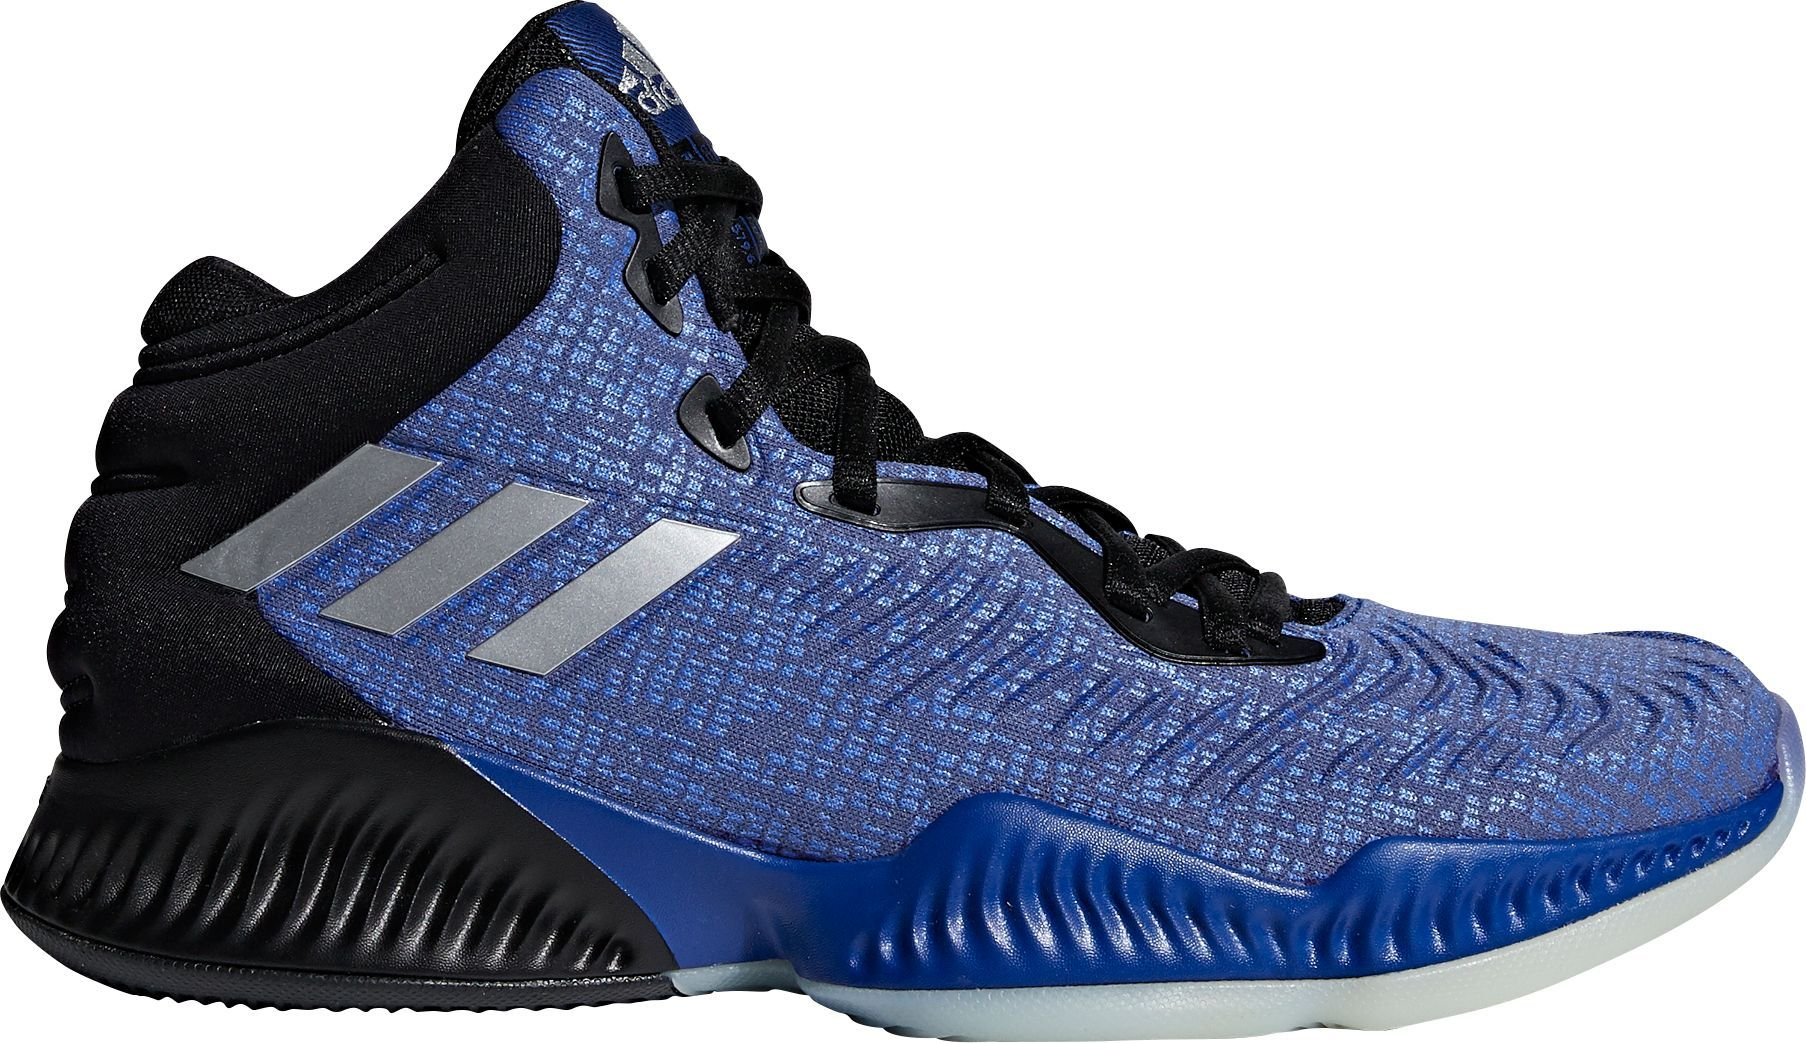 6bb34c76a0243 adidas Men s Mad Bounce 2018 Basketball Shoes in 2019